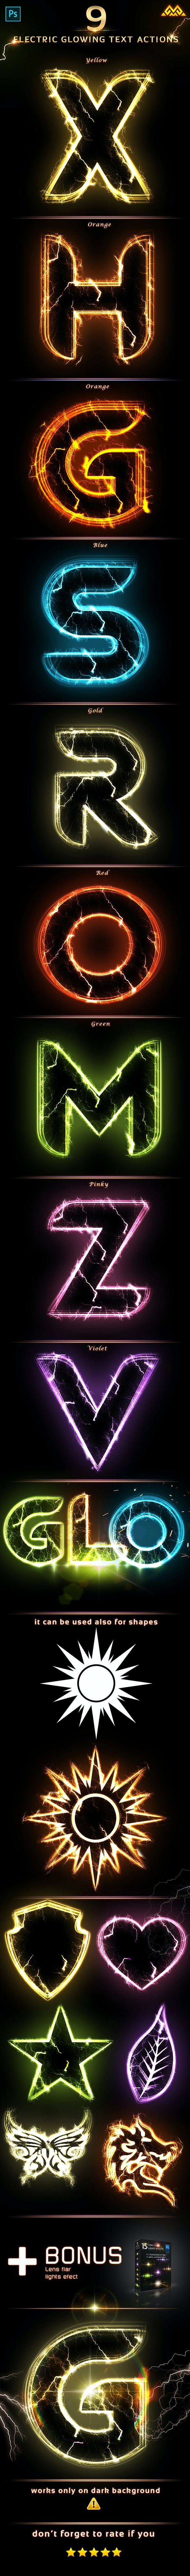 Electric Glowing effect  - Photoshop Action - Text Effects Actions